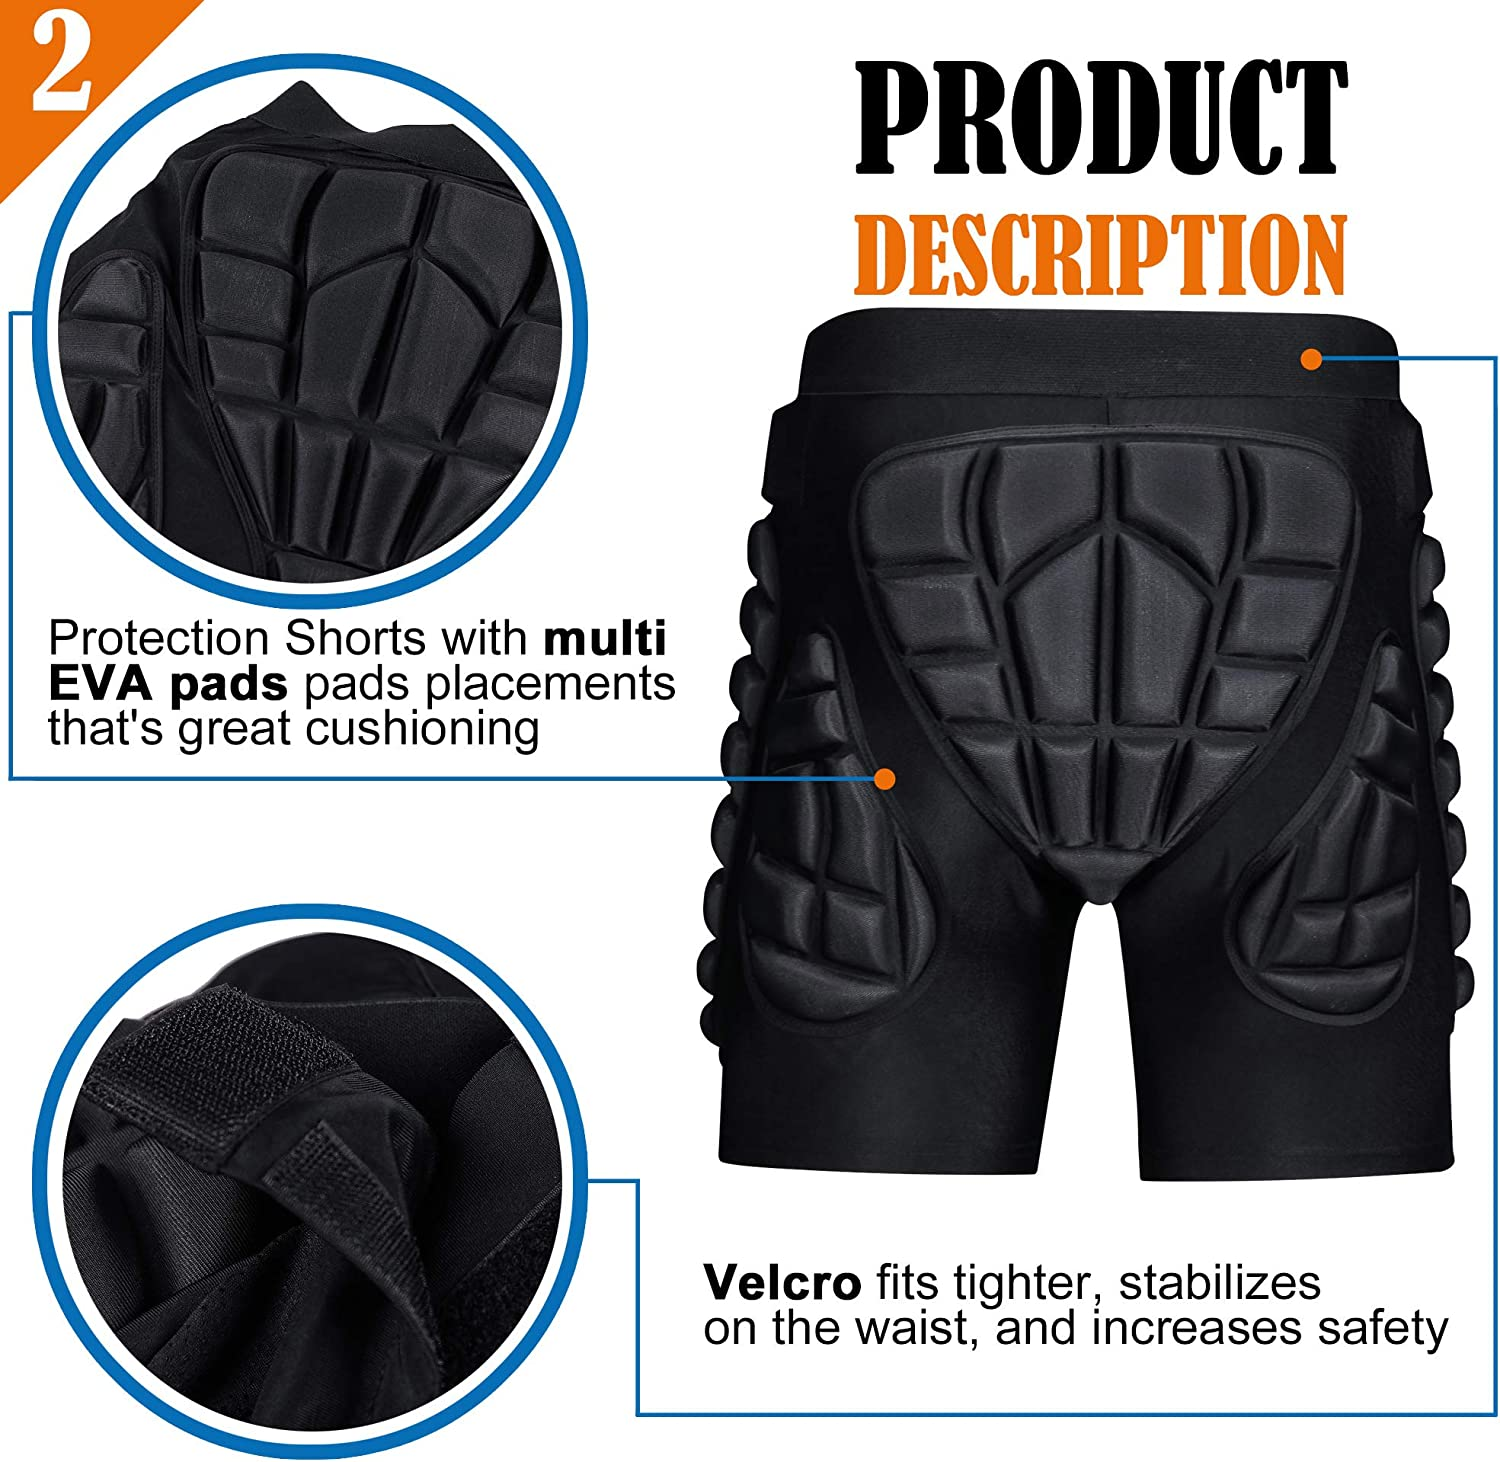 SIYWINA Hip Protection 3D Padded Shorts Cycling Short Protection Shorts for Men Women Lightweight Protective Gear for Skating